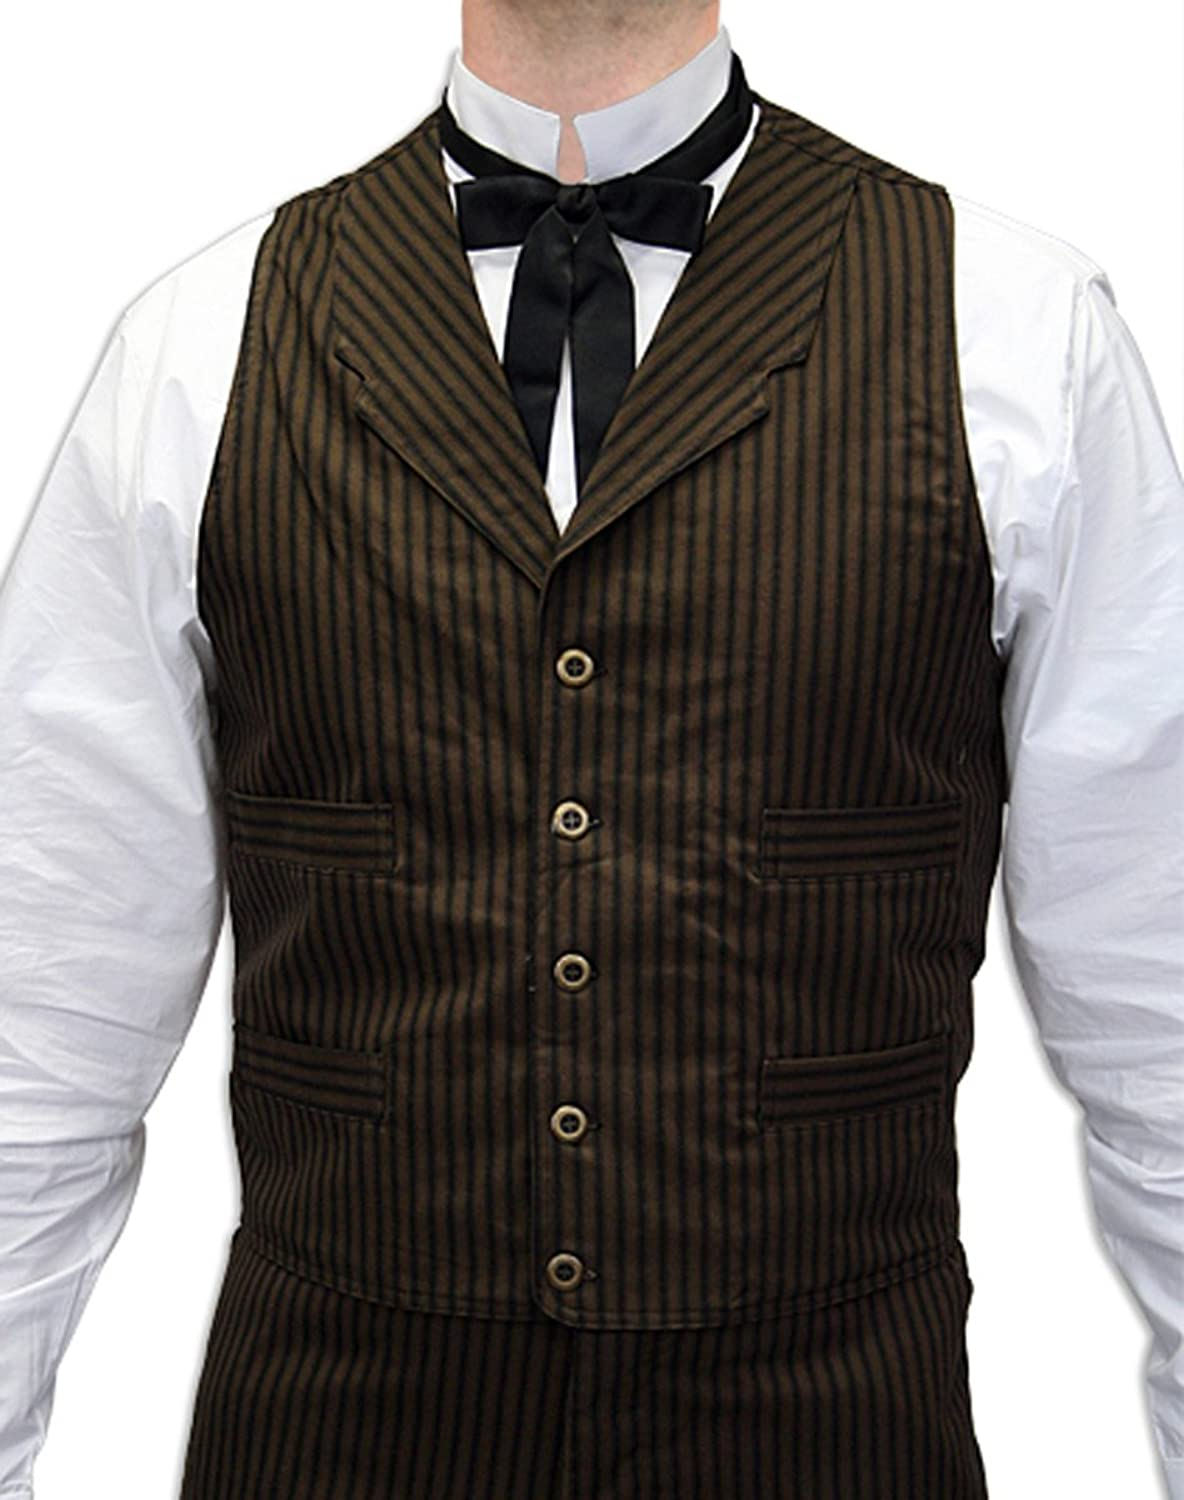 A men's dress vest is the perfect accessory to formal attire. Colors, patterns and textures combine for chic styles. Pair these pieces beneath suit jackets for a striking look.